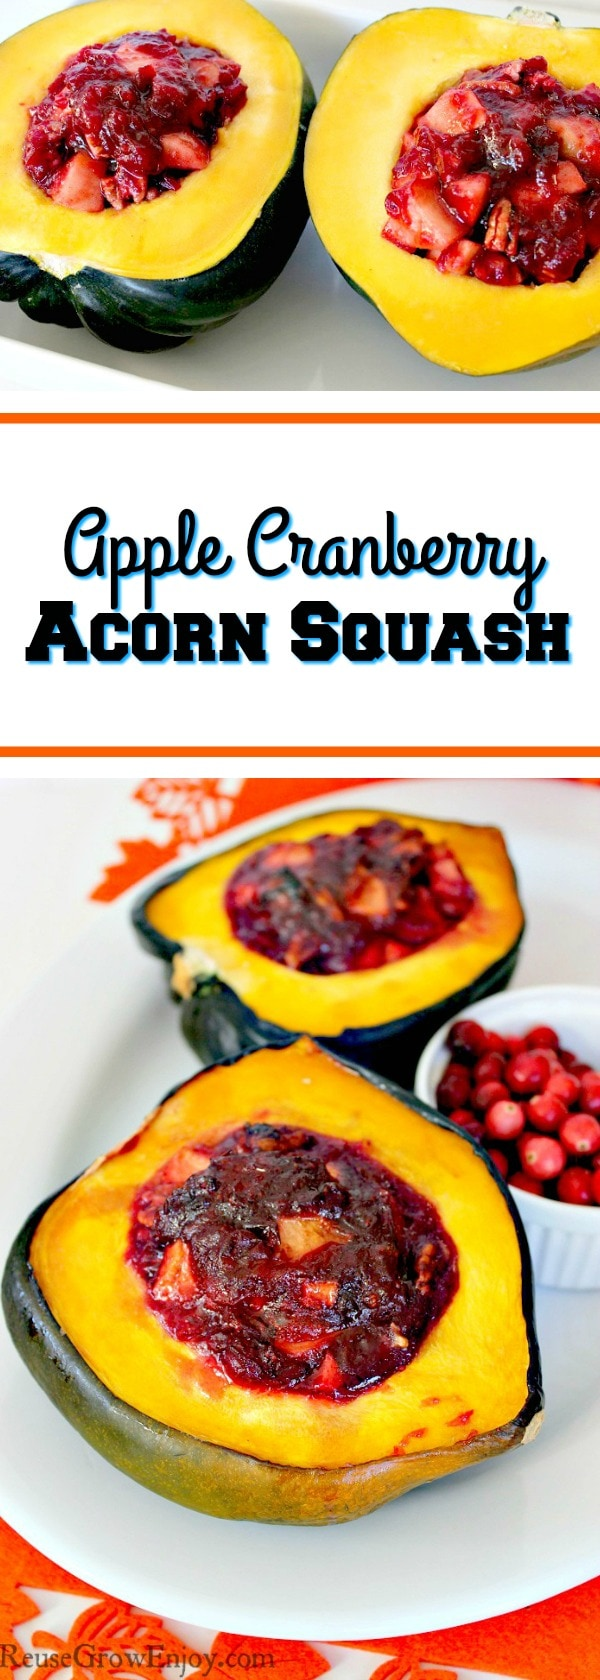 With fall comes all of the lovely flavors. Check out this Apple Cranberry Acorn Squash Recipe if you are up to trying something new.